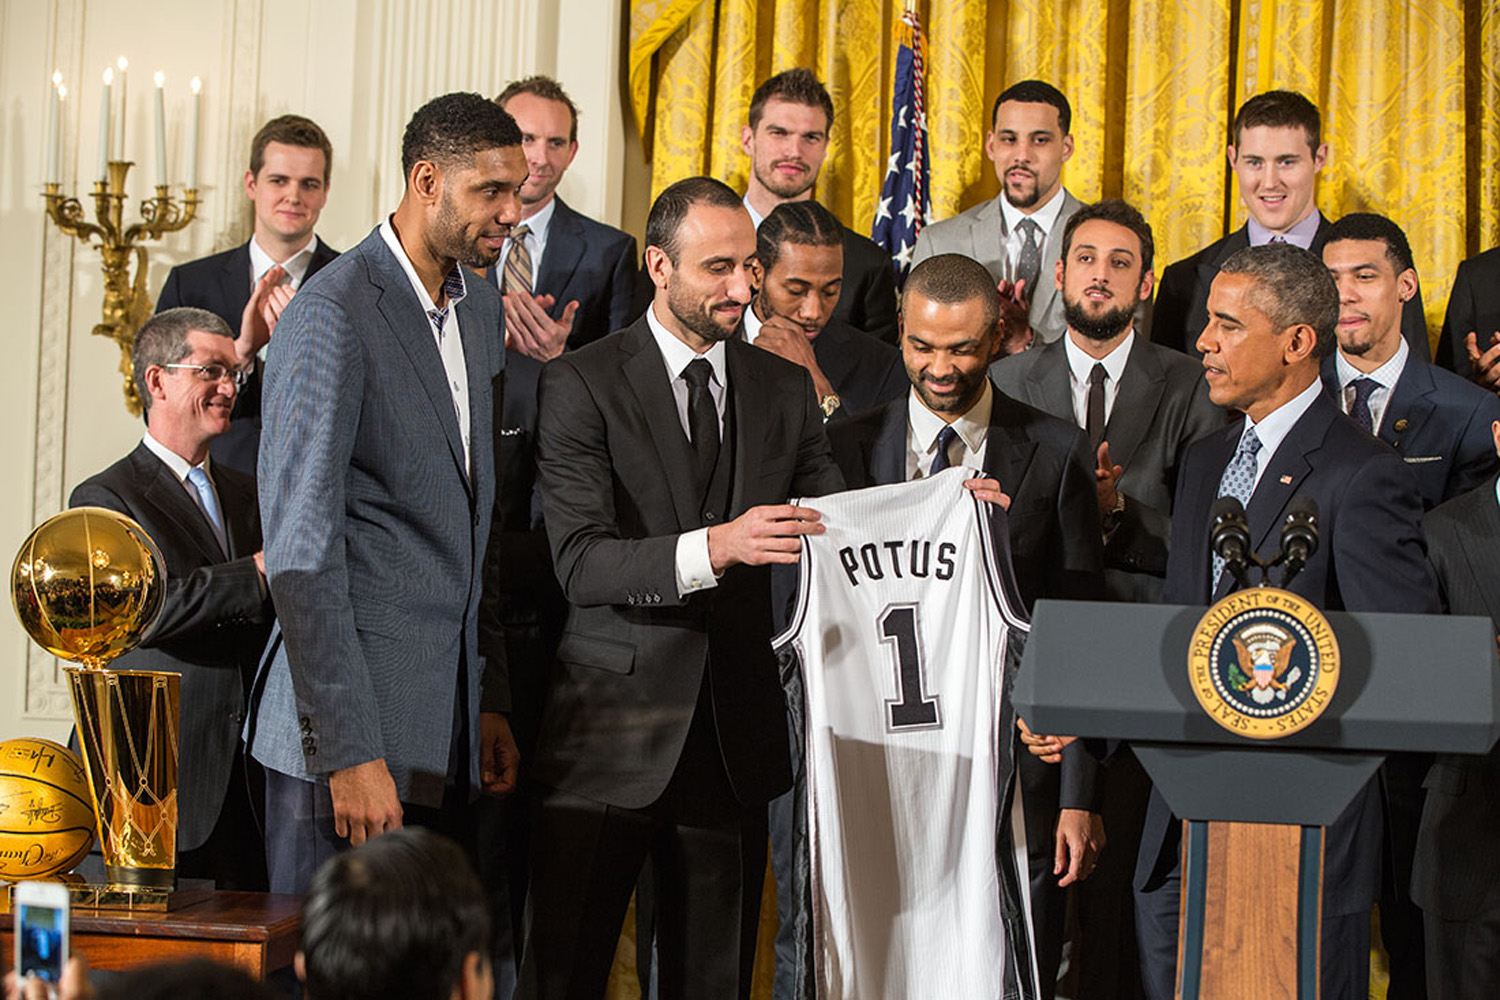 Tim Duncan, Manu Ginóbili and Tony Parker present President Barack Obama with a Spurs team jersey during an event to welcome the 2014 NBA Champion San Antonio Spurs in the East Room of the White House, Jan. 12, 2015. (Official White House Photo by Pete Souza)